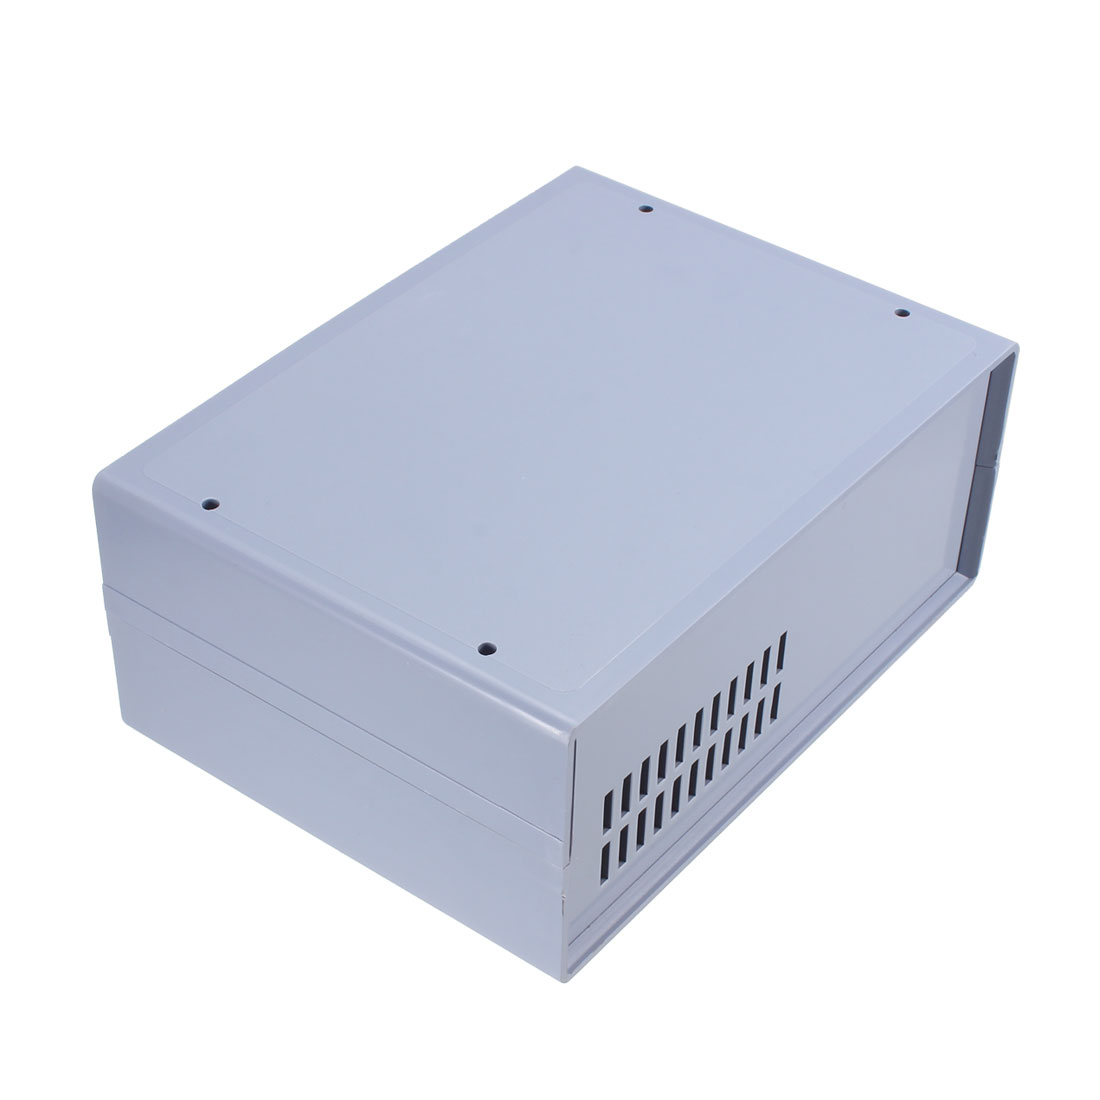 Electrical Project DIY Case Power Enclosure Junction Box 6.5 x 4.7 x 2.5 Inch